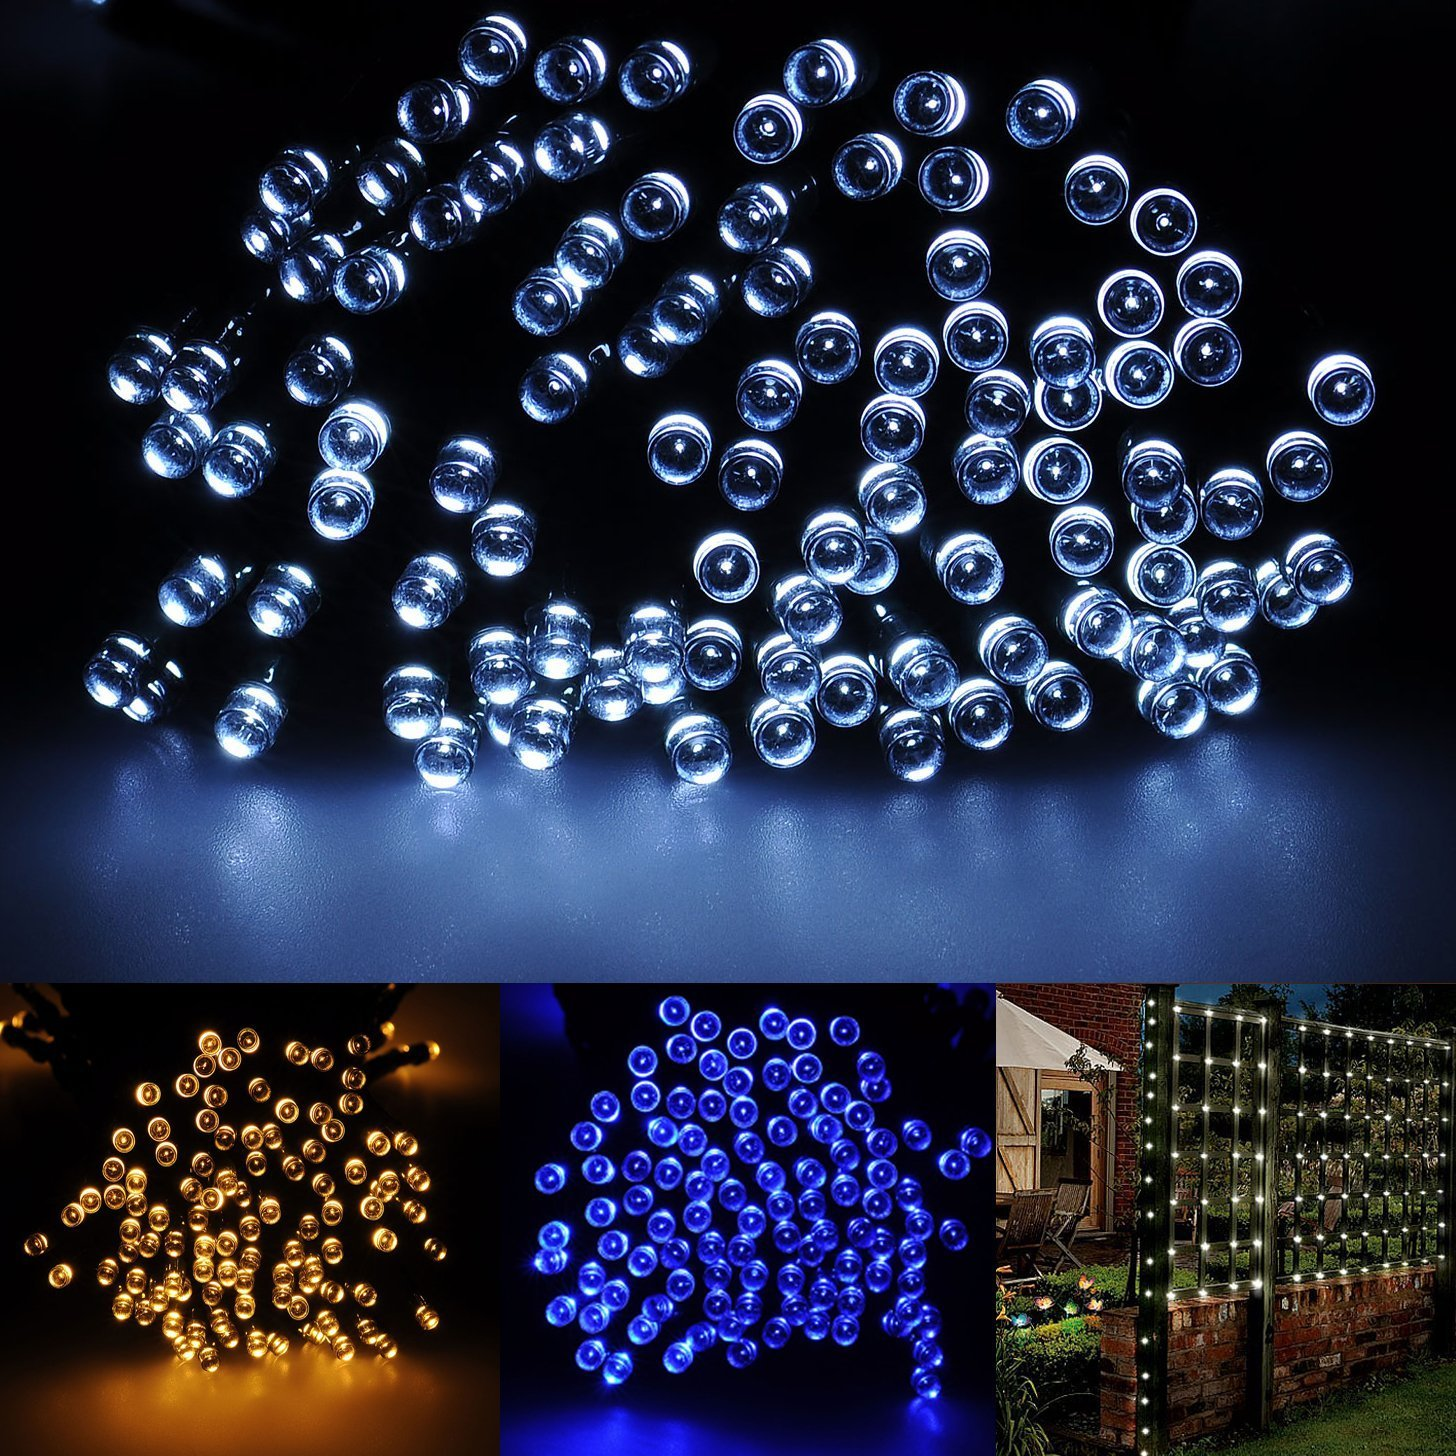 Brightown 72ft/22m 200 LED Solar Fairy String Lights for Outdoor, Gardens, Patio, Lawn, Porch, Gate, Yard, Trees, Homes, Christmas Party, Color Pure White, Guarantee for Three Month Replacement